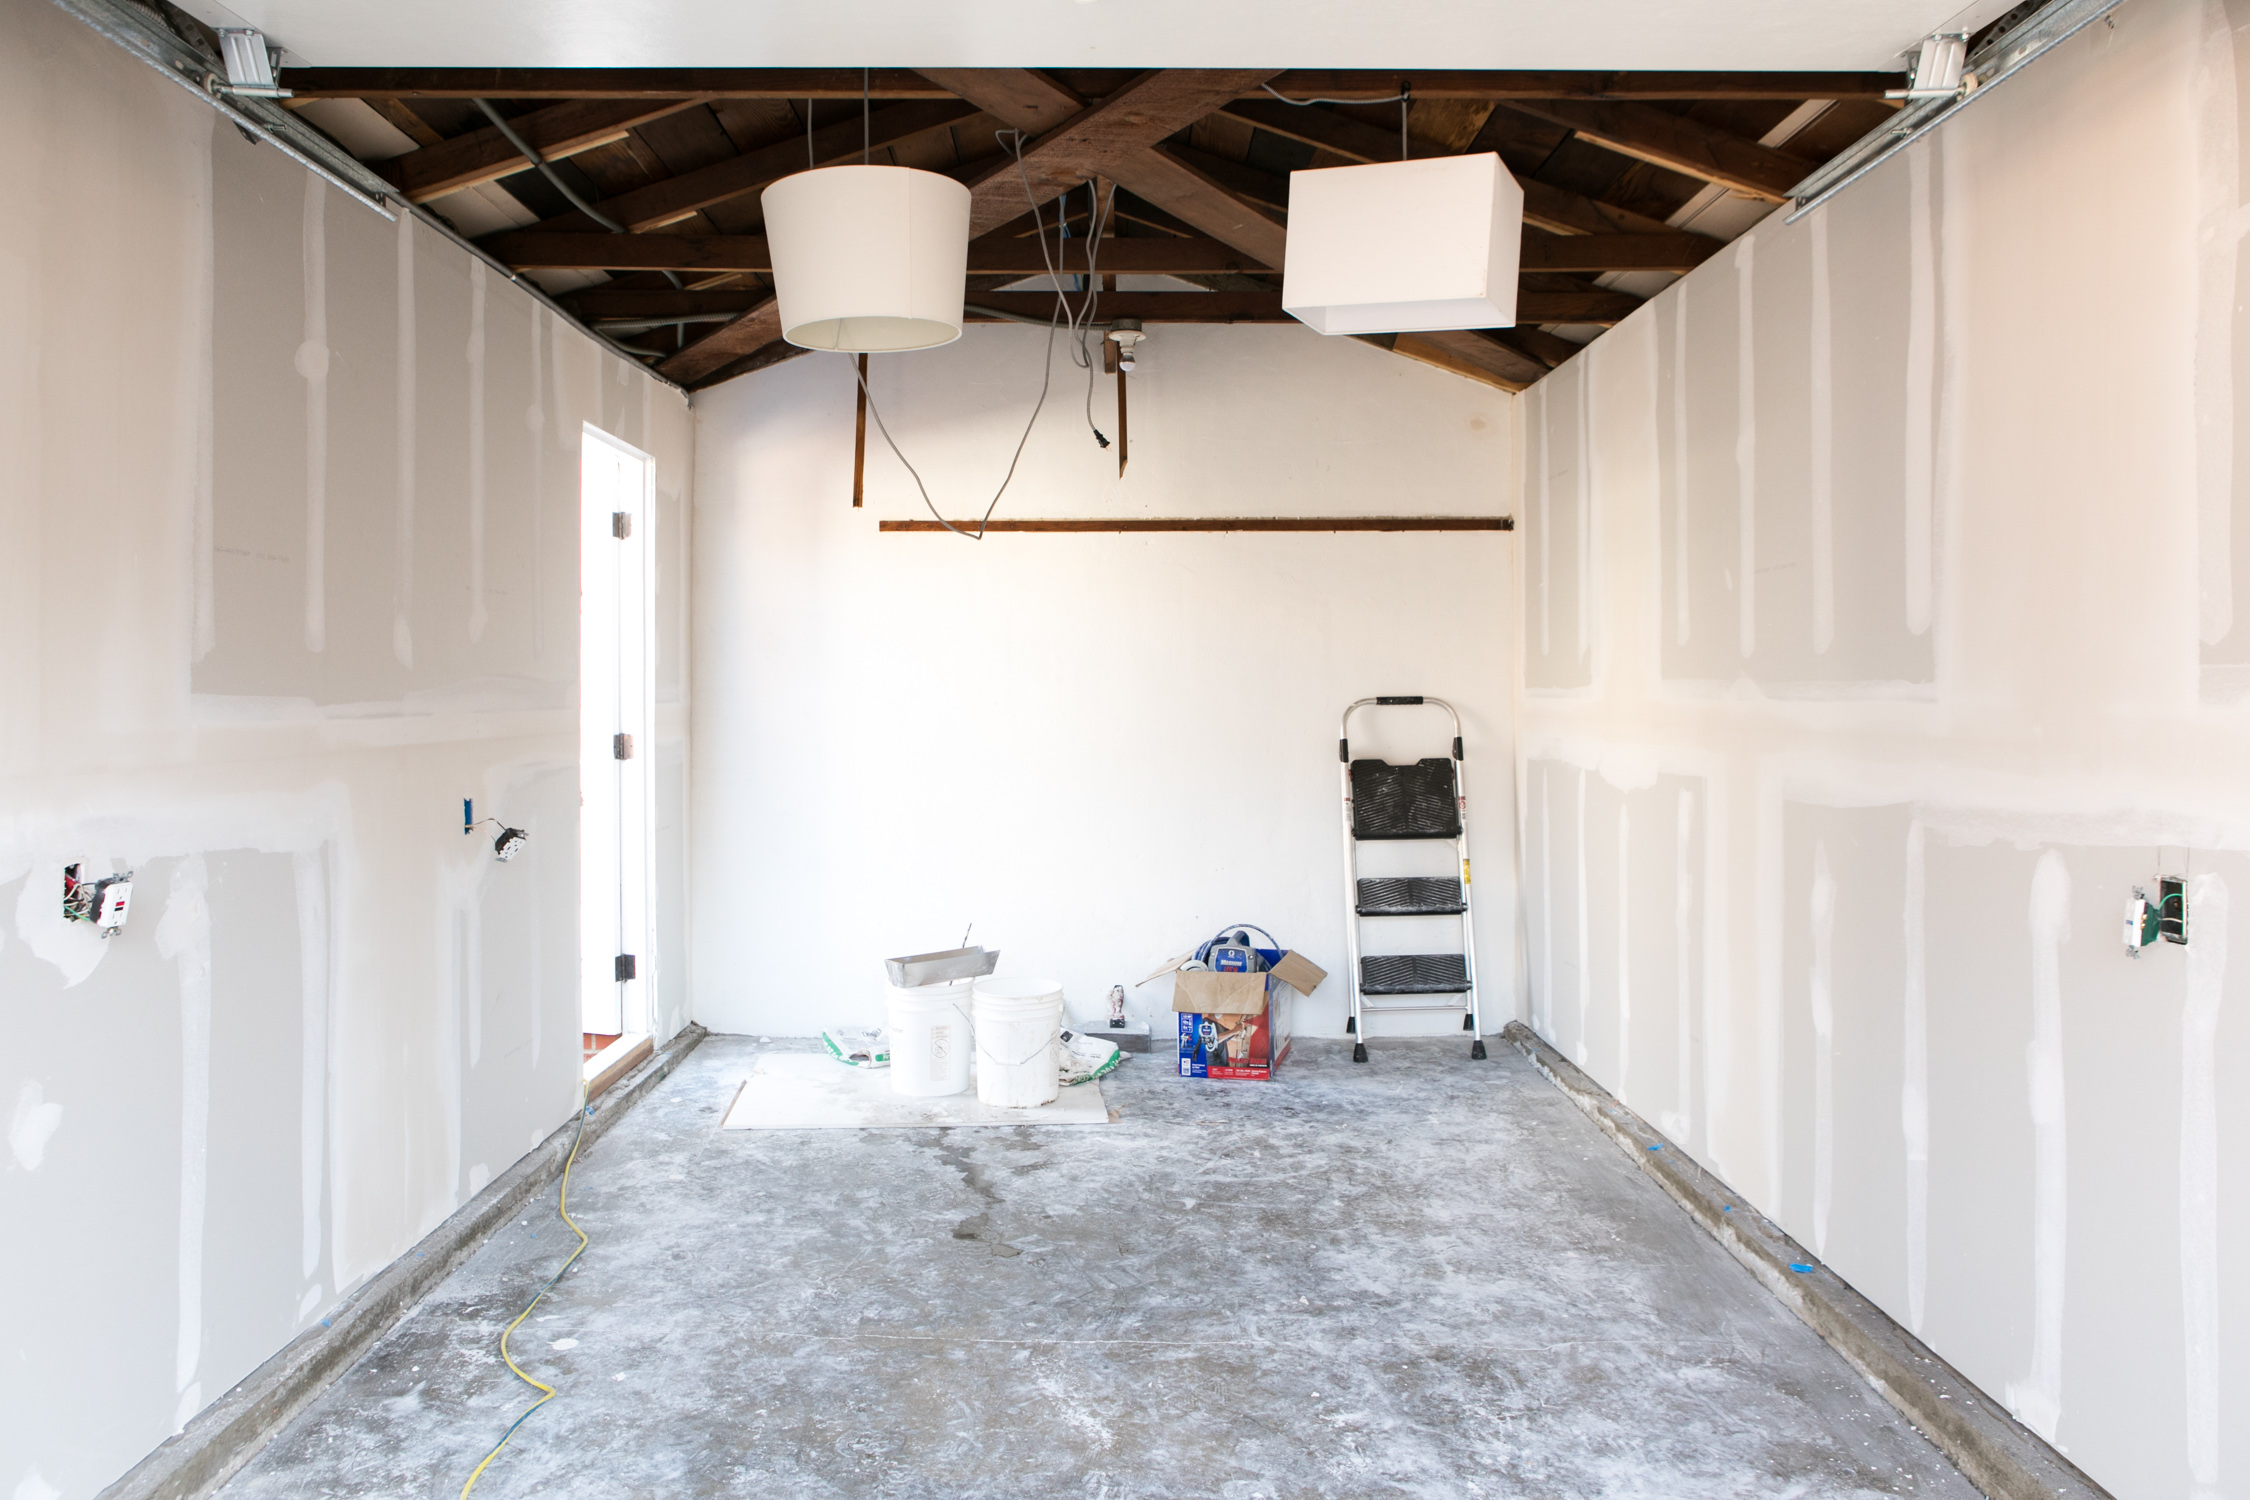 Unfinished drywall in garage